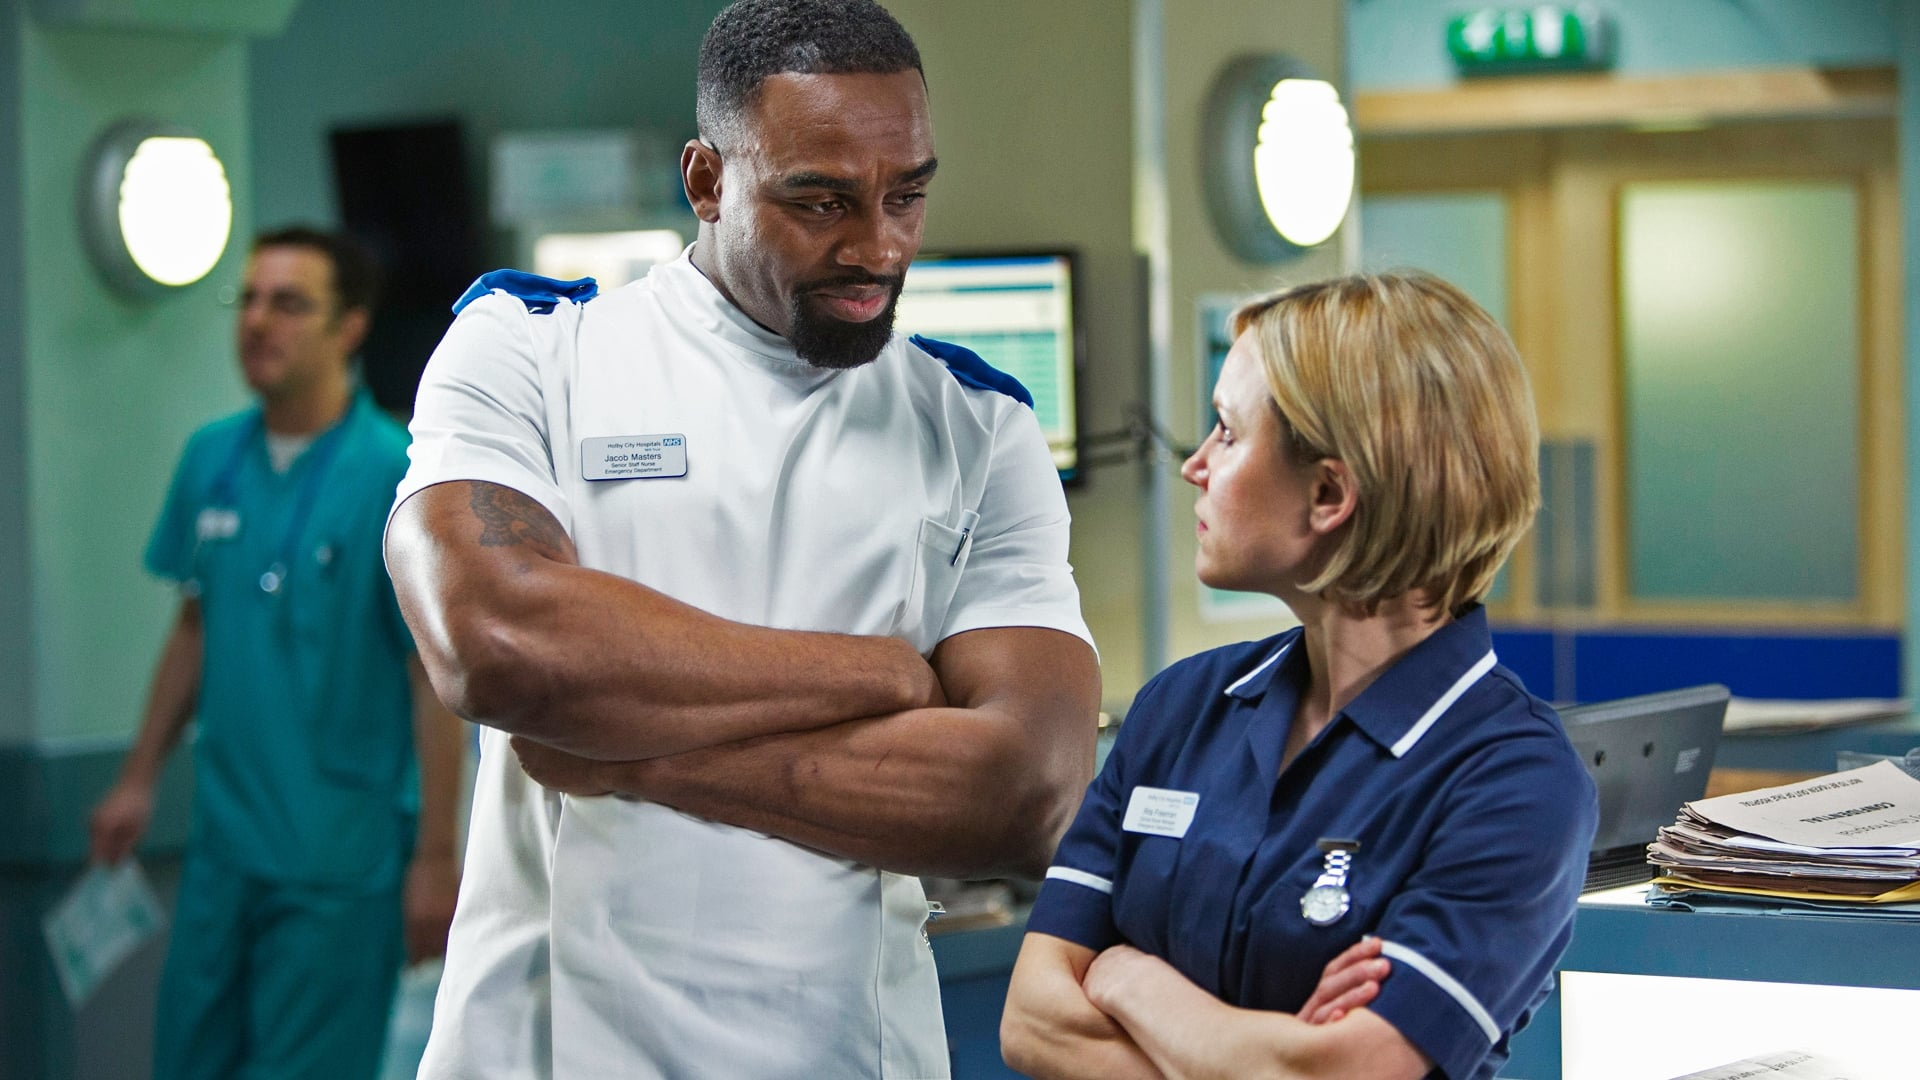 Casualty - Season 29 Episode 41 : The Next Step